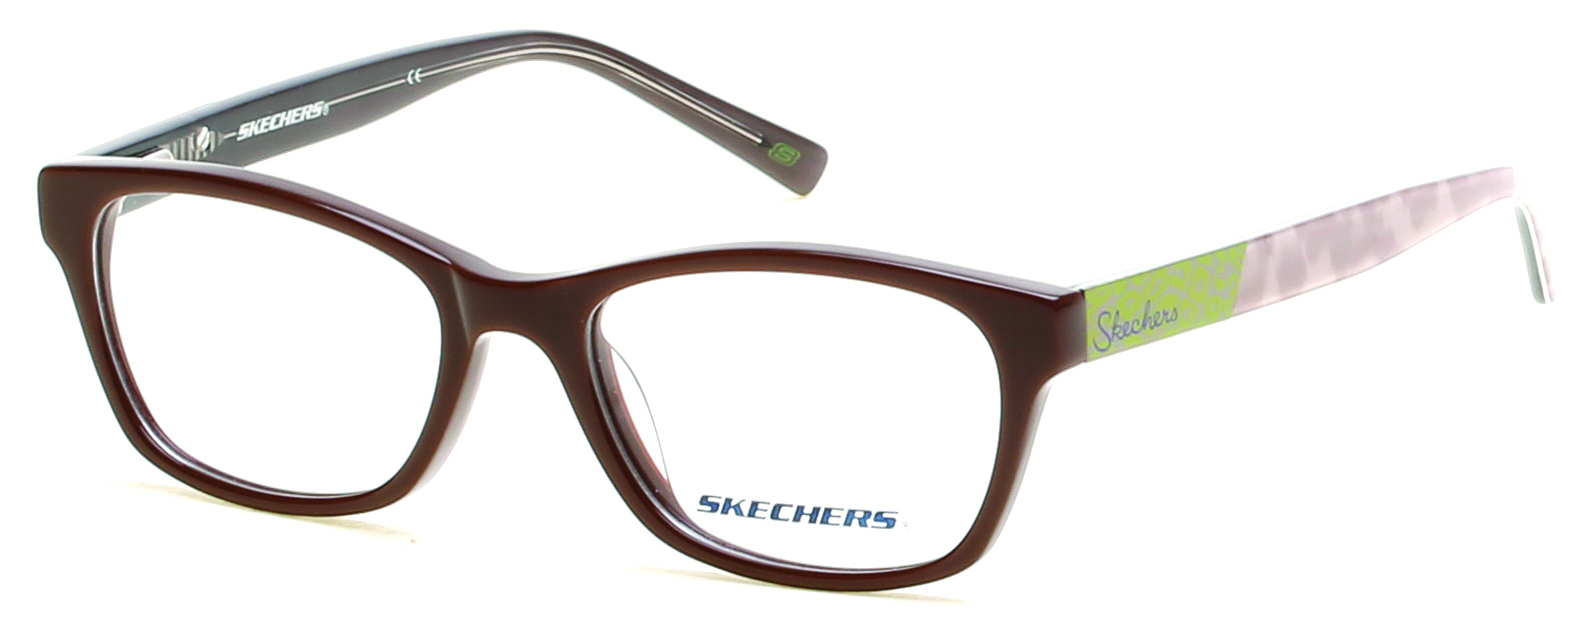 9941c2df2a3 Eyewear for Kids - Brown - Optiwow